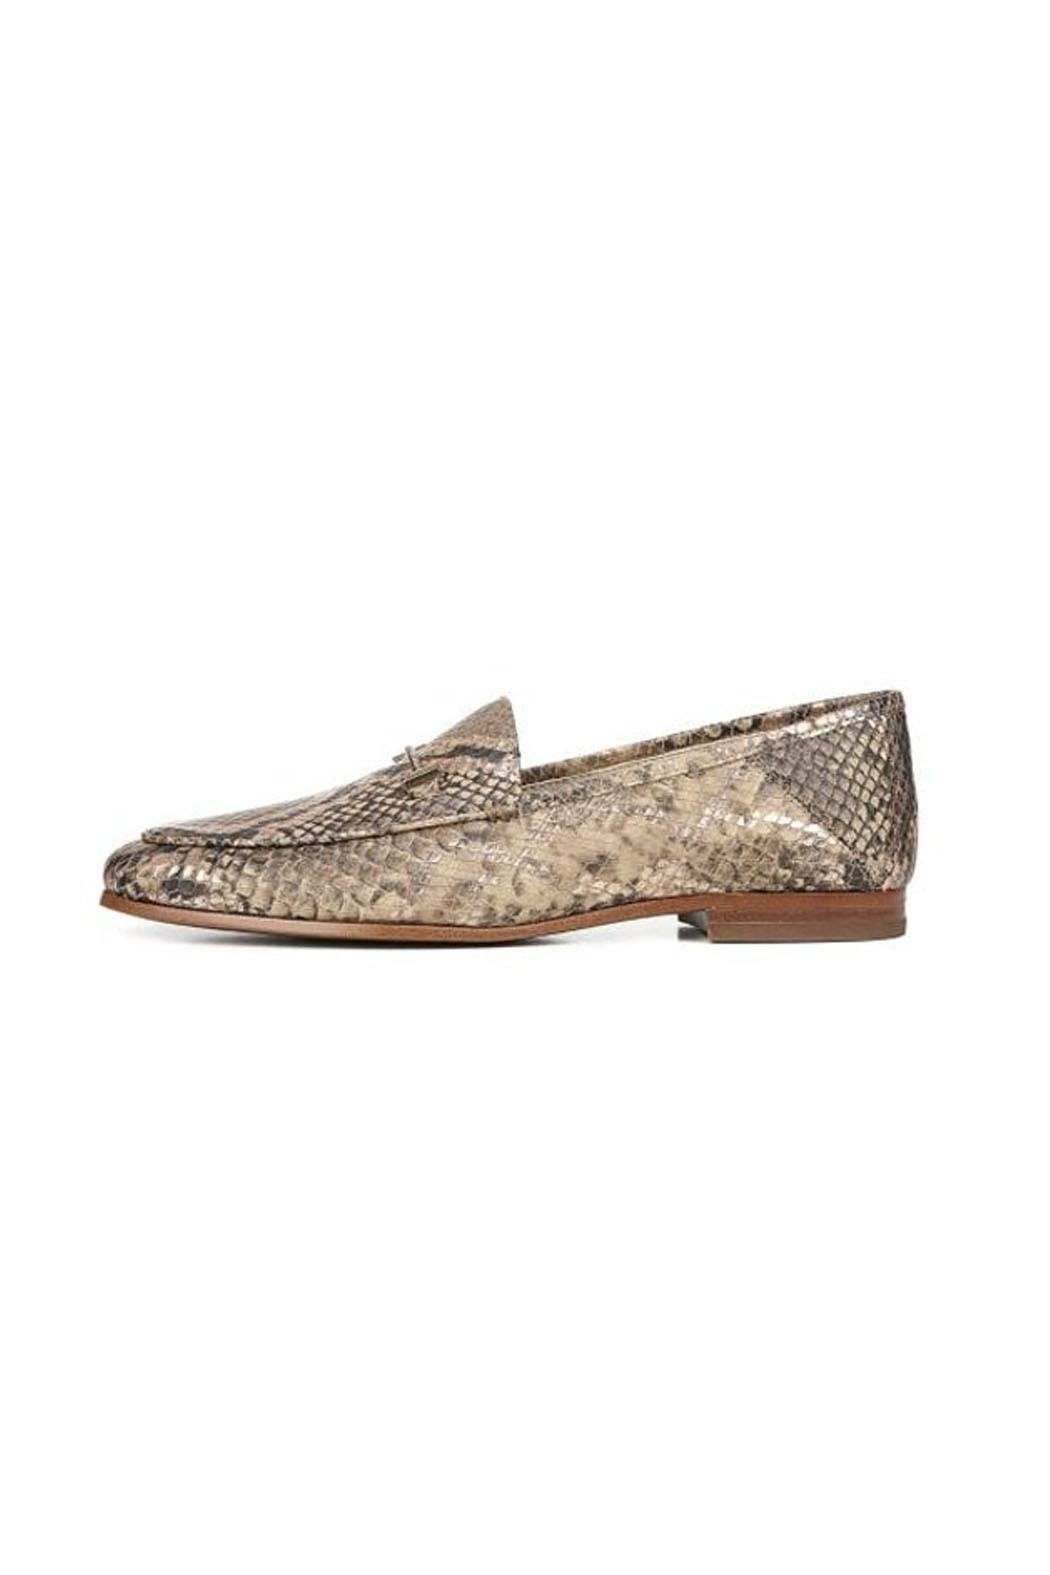 Sam Edelman Brown Snake Loafer - Main Image